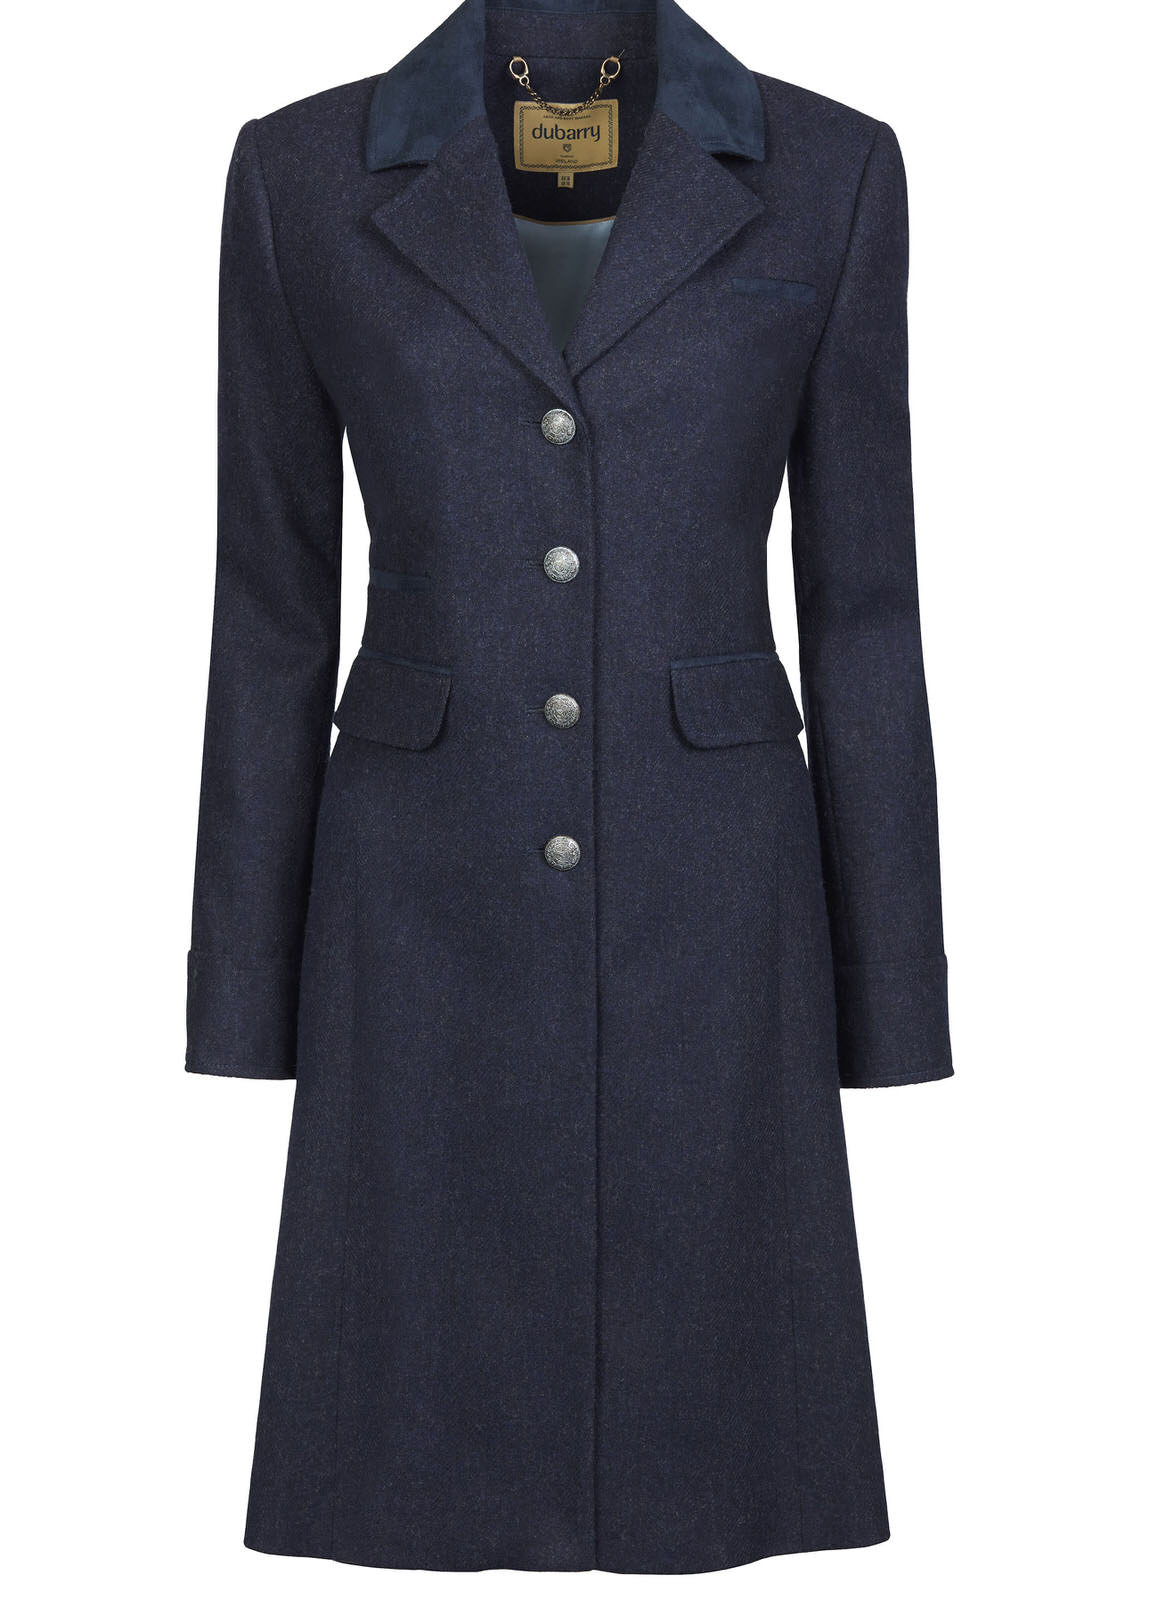 Blackthorn_Tweed_Jacket__Navy_Image_1